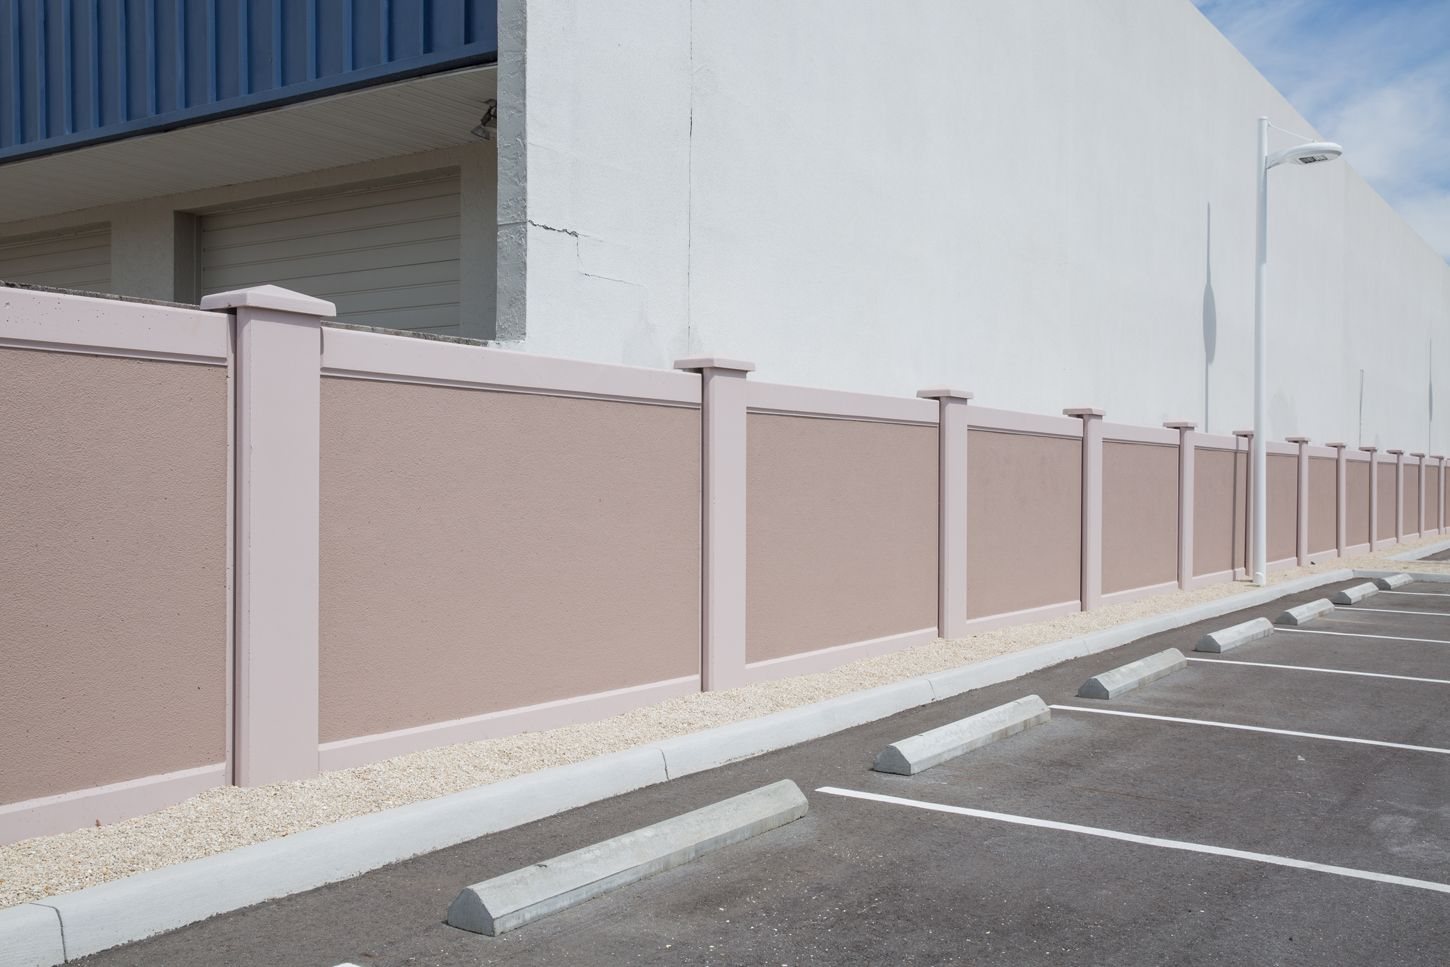 Permawall 1 0 The Original Precast Concrete Wall In Fl Tx House Wall Design Fence Wall Design Compound Wall Design